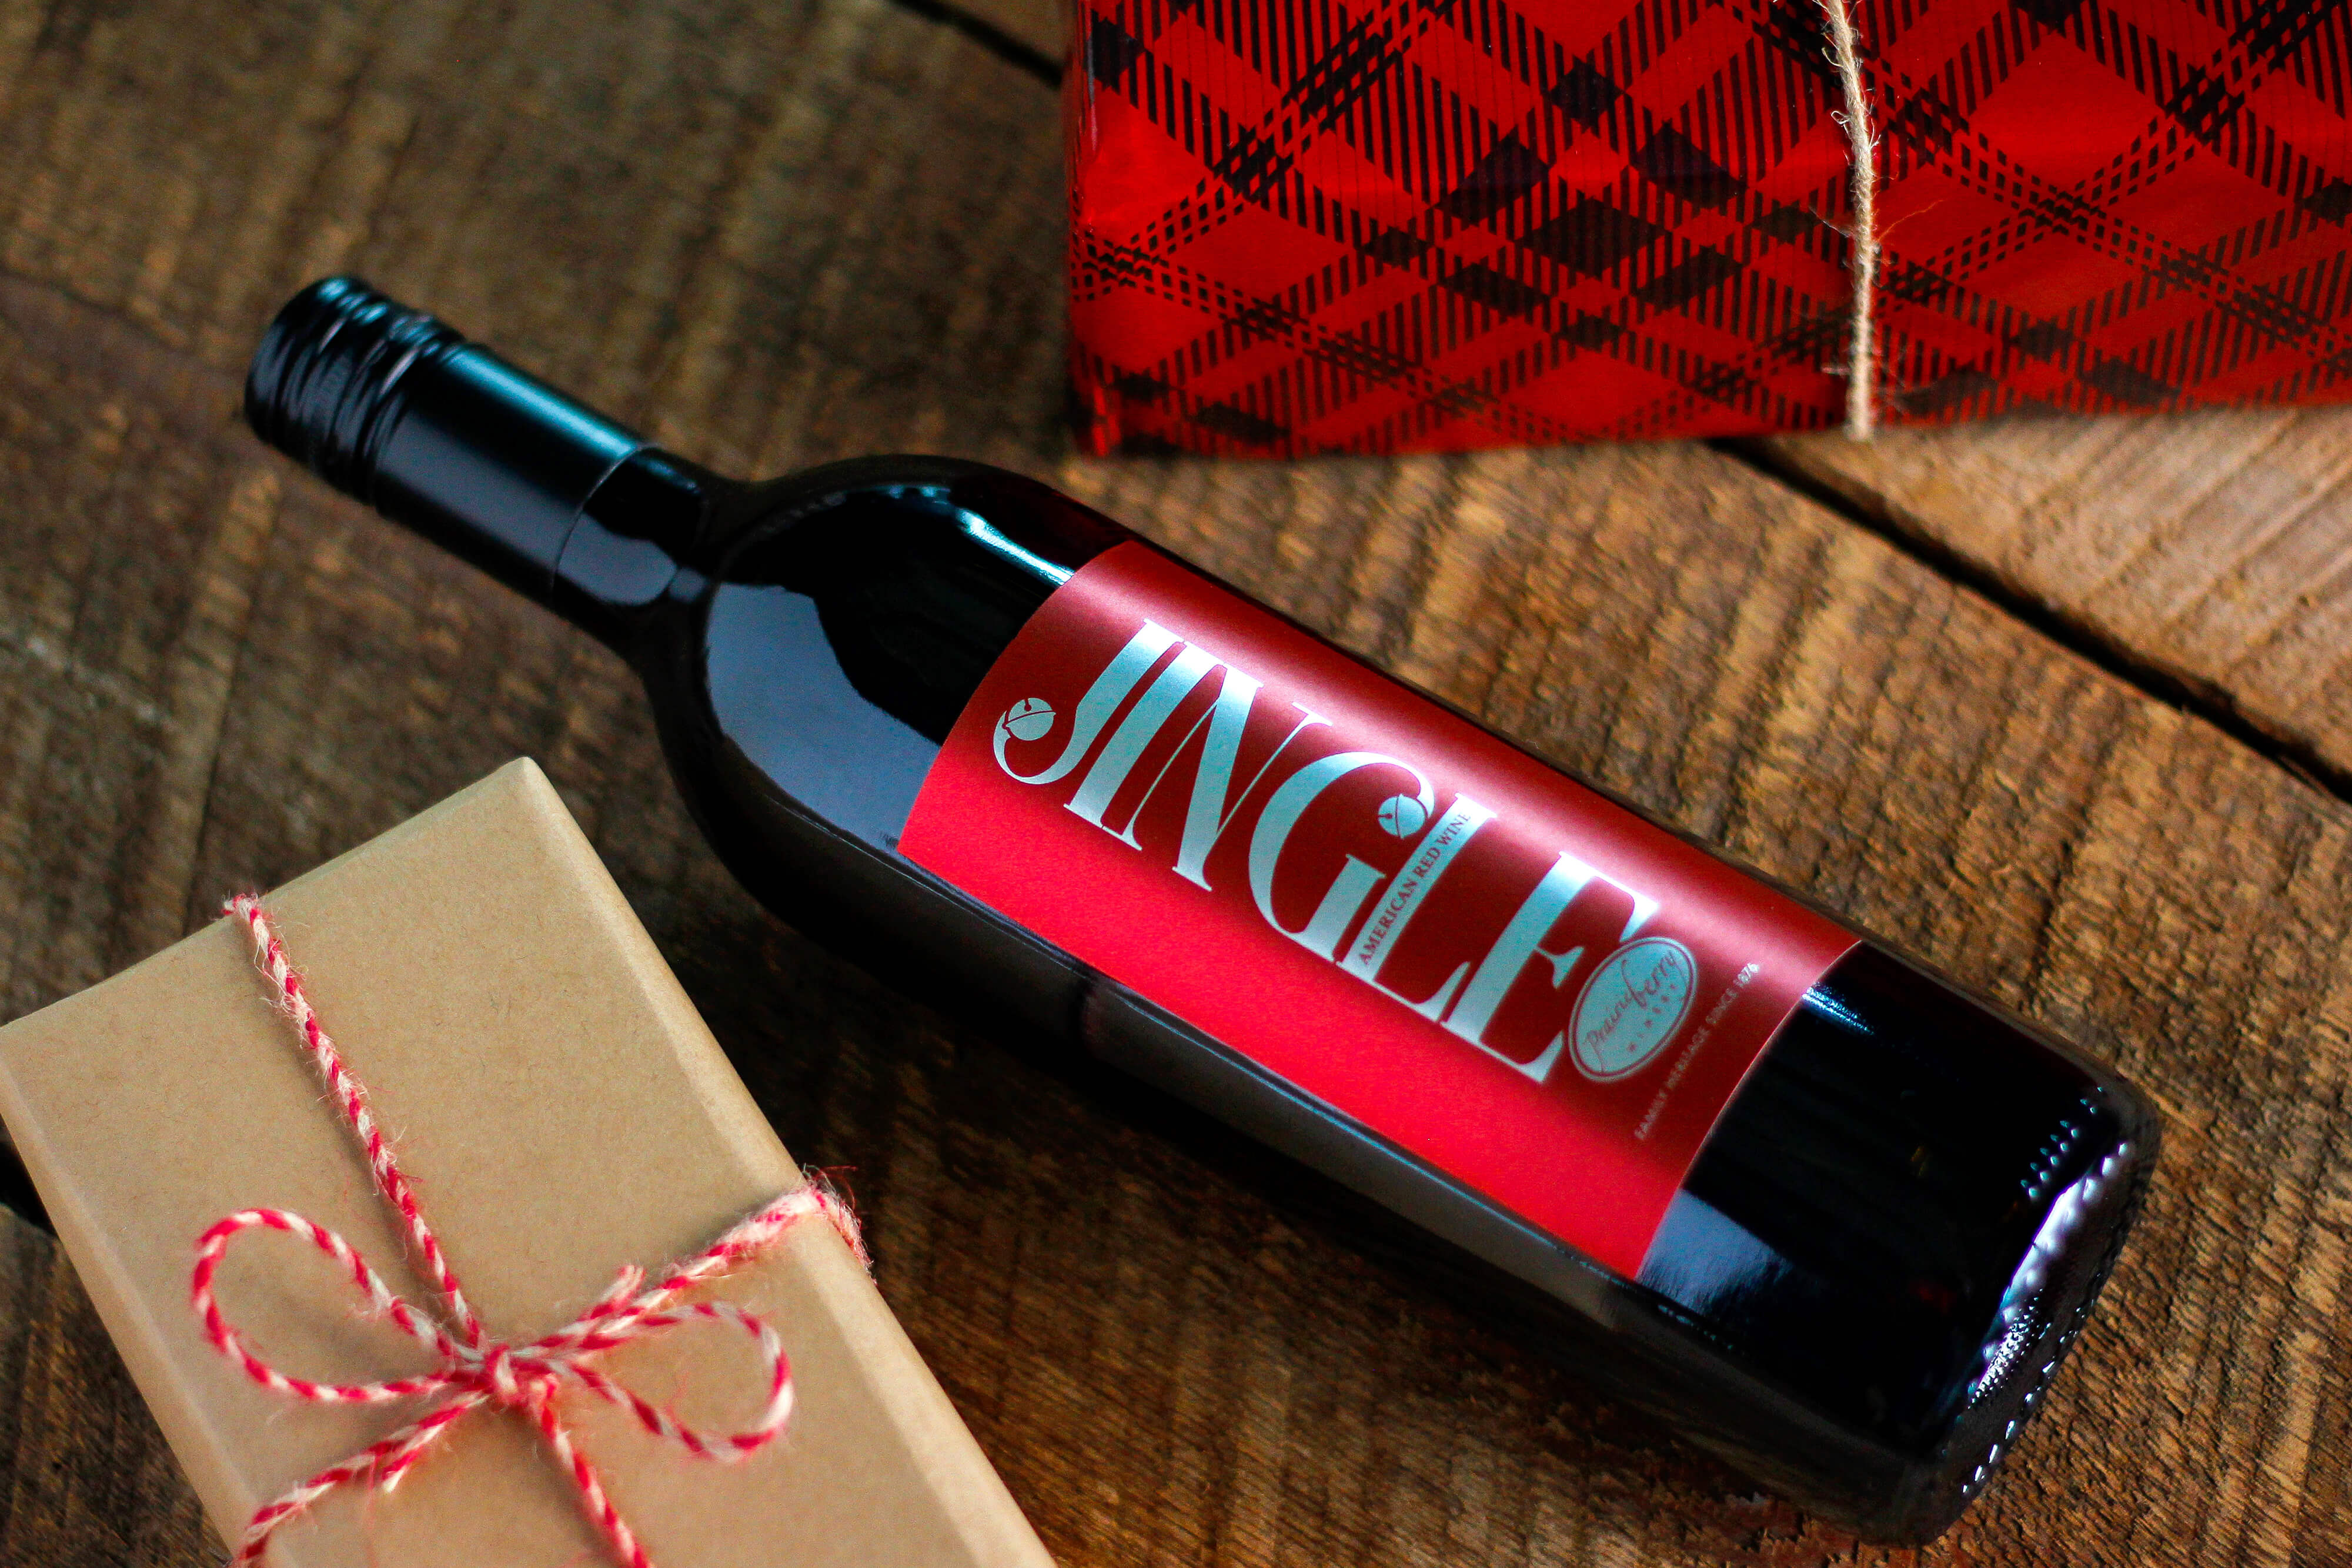 Jingle is a dry red blend made by Prairie Berry Winery in Hill City, South Dakota.